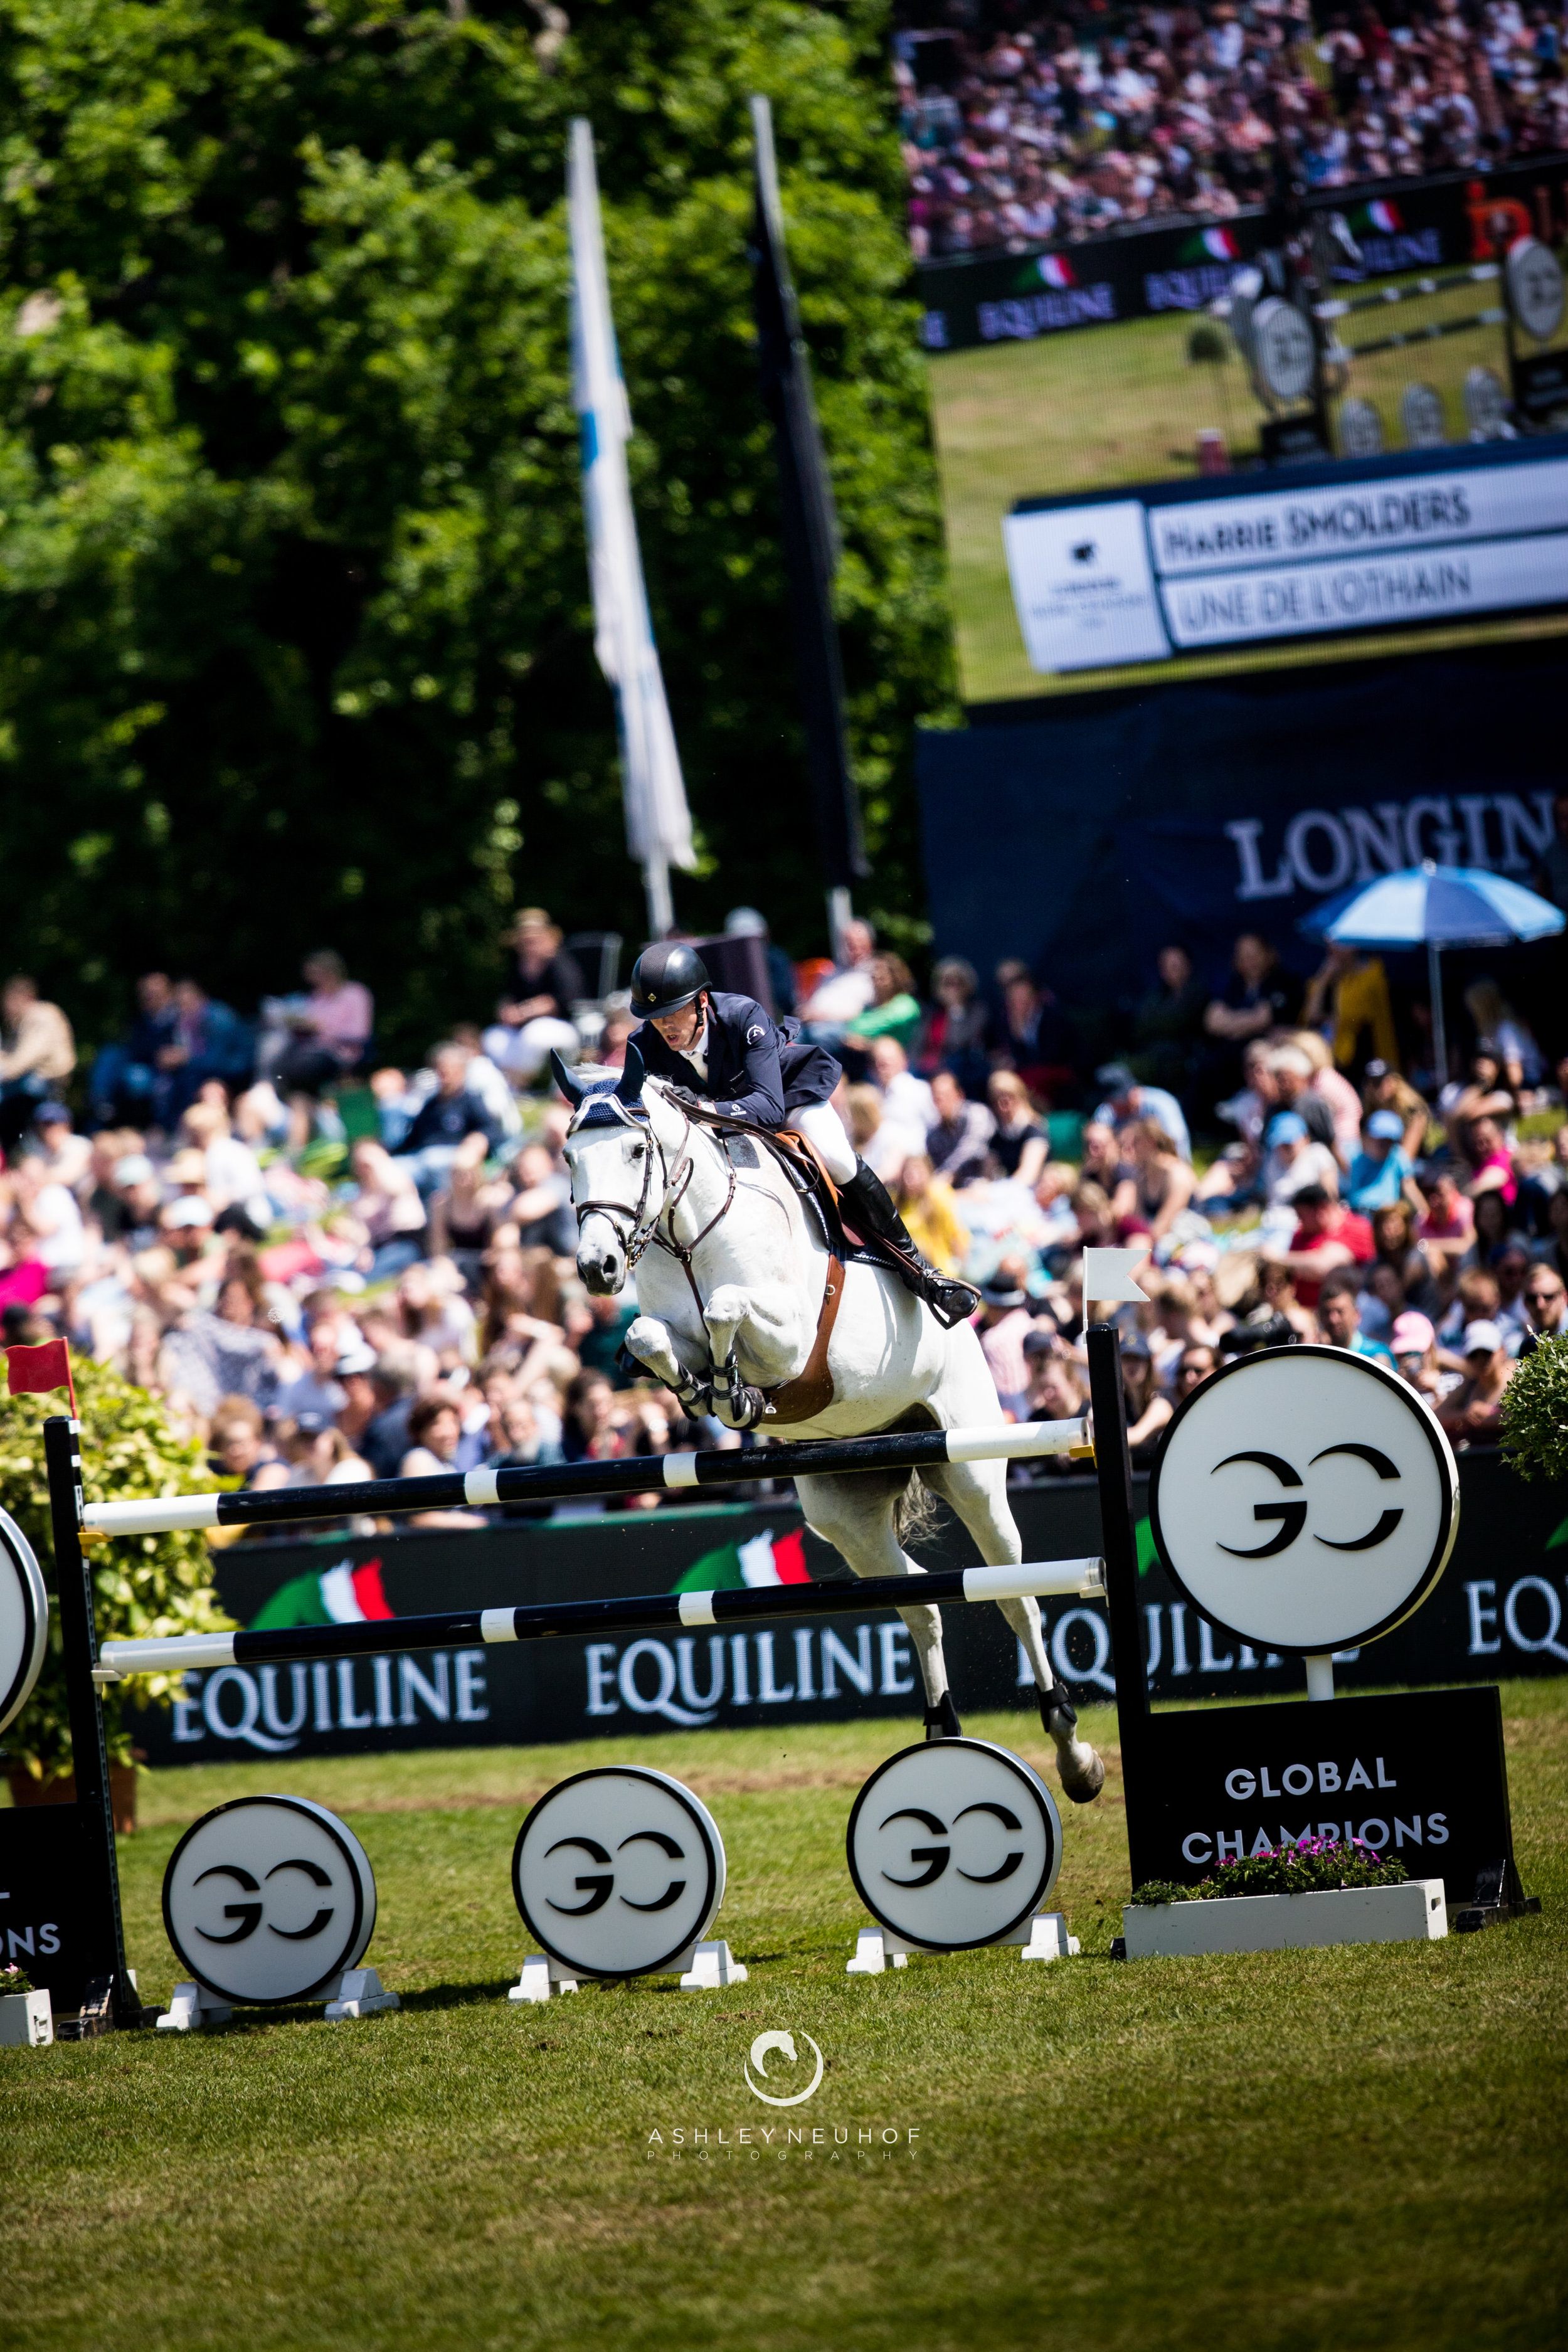 Jenn Gates and Pumped Up Kicks at Longines Global Champions Tour of Hamburg 2019. Photo by Ashley Neuhof Photography.